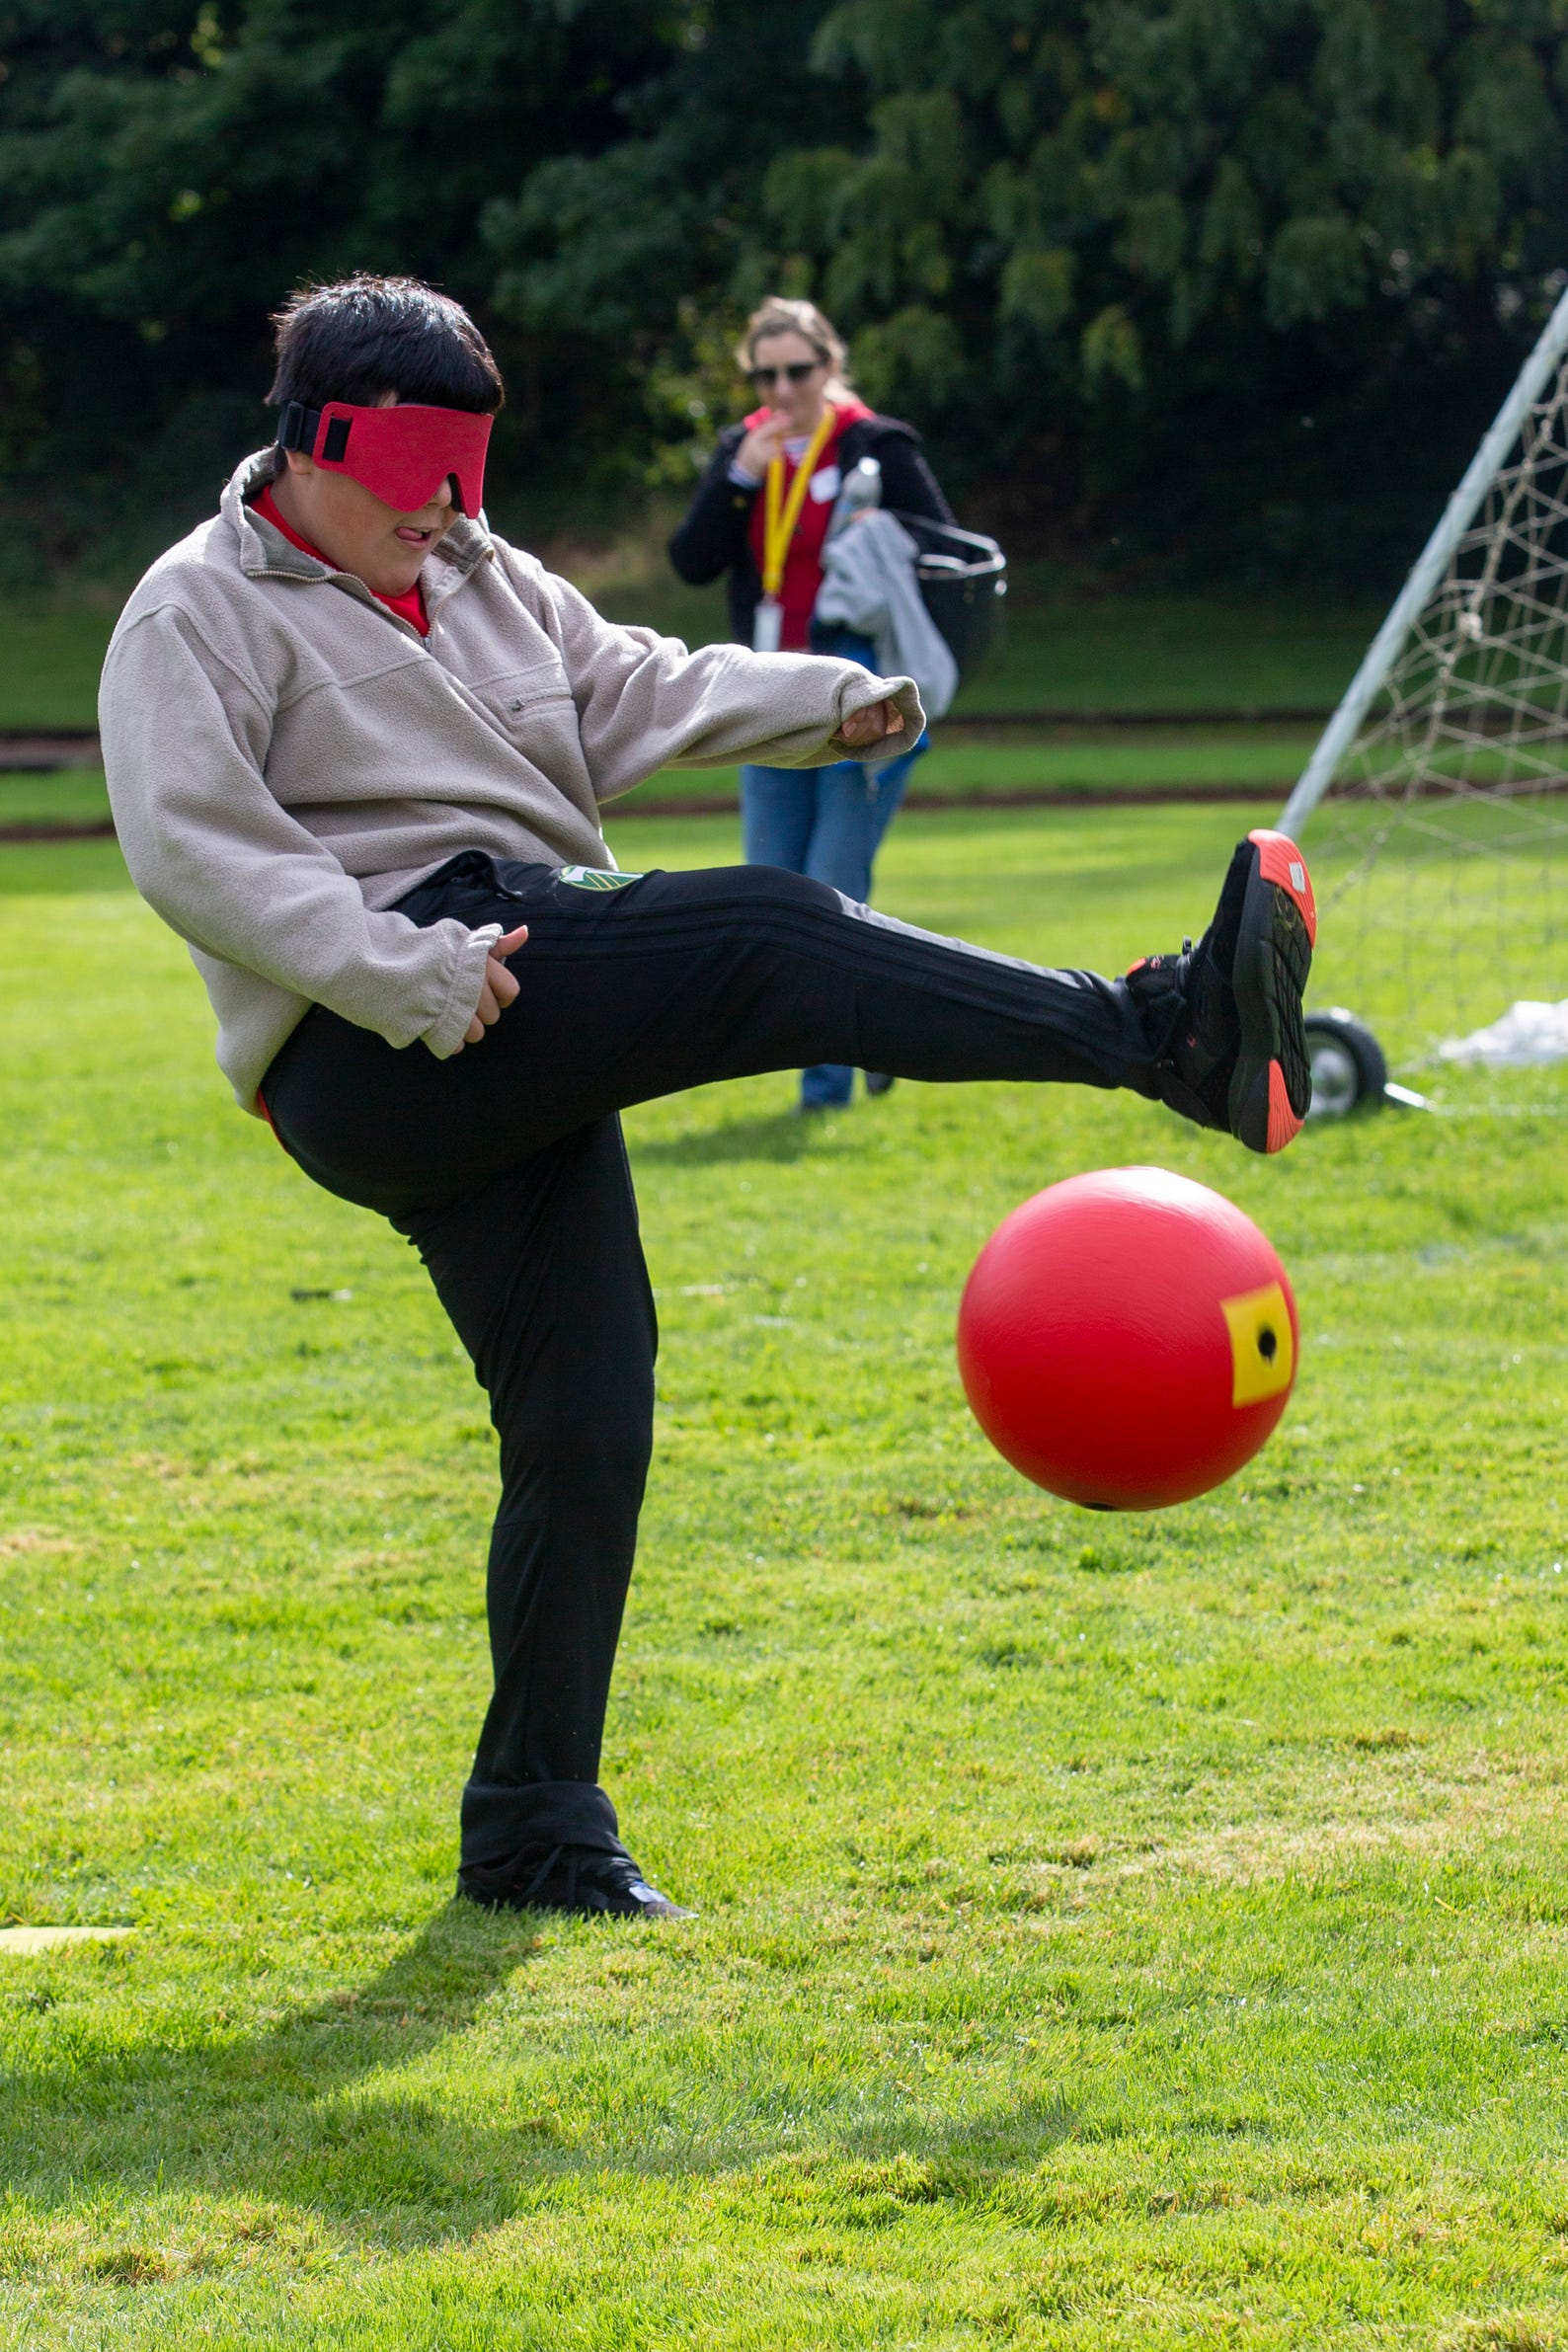 "Luis Alvarez-Castaneda, a 6th grader, takes a mighty kick during beep kickball at the Oregon School for the Deaf in Salem, Oct. 4, 2019. NWABA, the Northwest Association for Blind Athletes, hosted a ""Paralympic experience"" for students with visual impairments in the state. After the Oregon School for the Blind closed in 2009, many visually impaired students and their families lost access to state-funded resources, like sports programs. The BVIS (Blind Visually Impaired Student) Fund gives programs like NWABA funds to enhance the lives of low vision/blind children across the state."